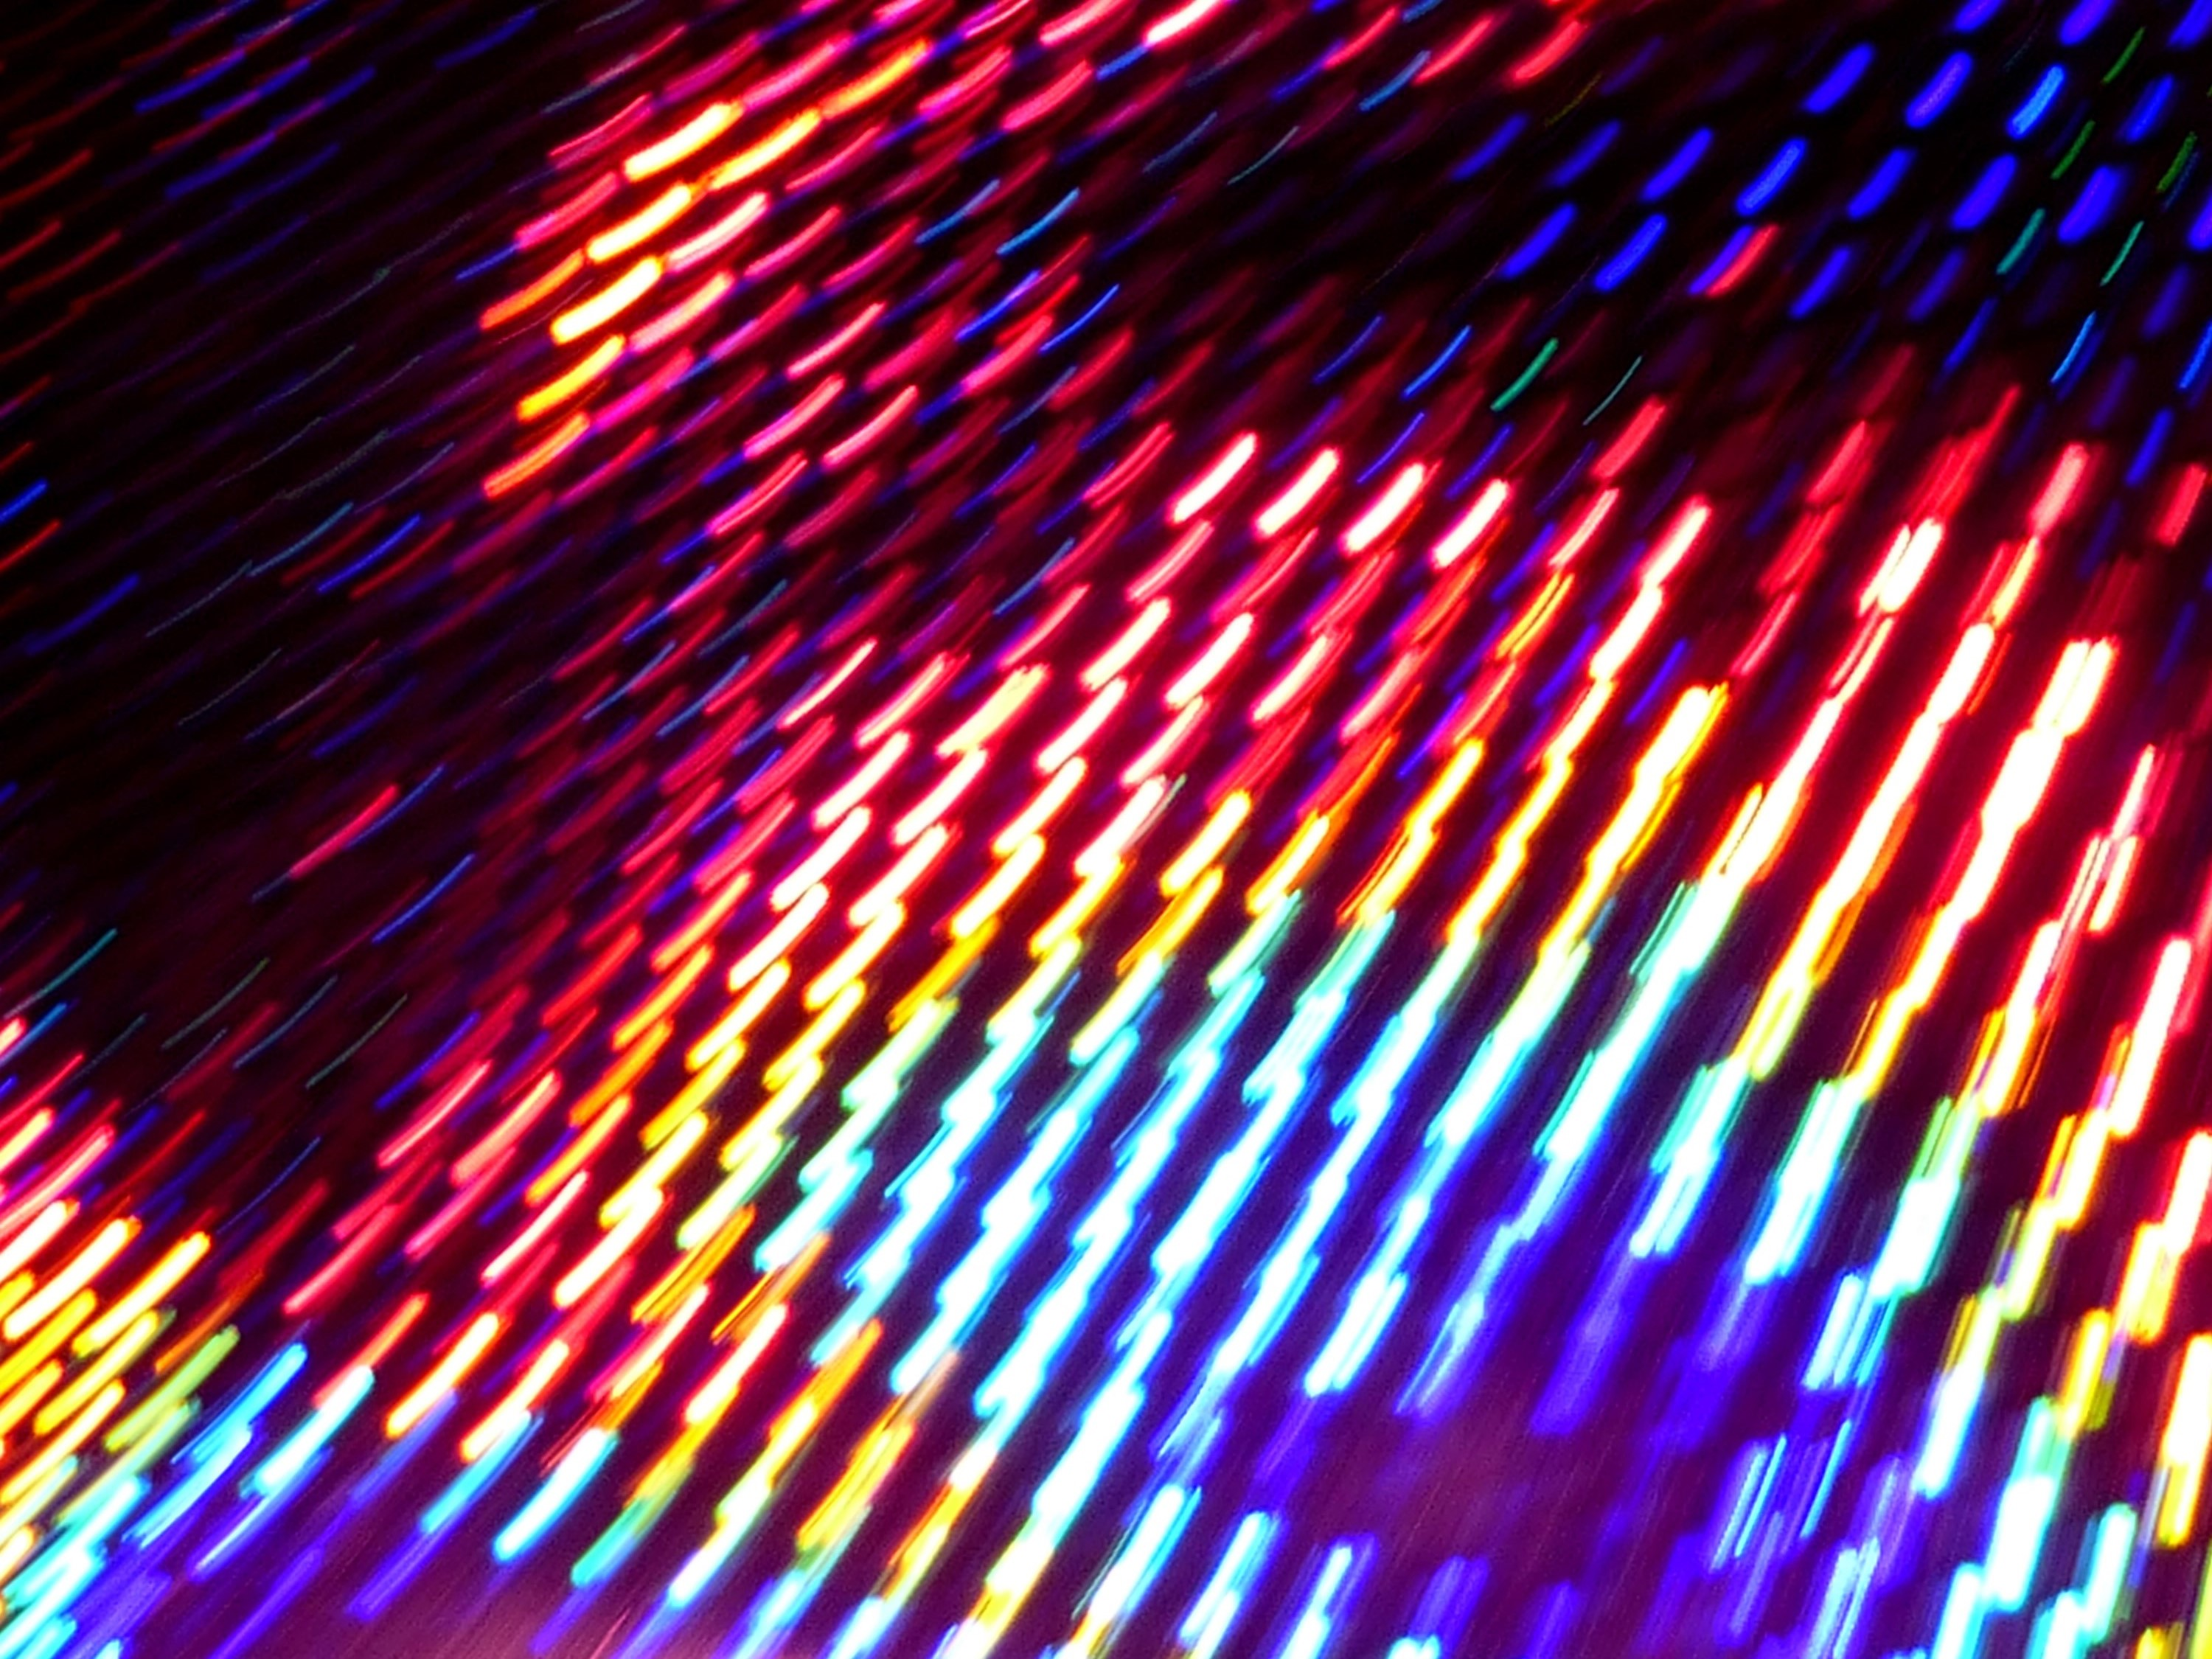 glowing strikes of light formed into a matrix array of colours